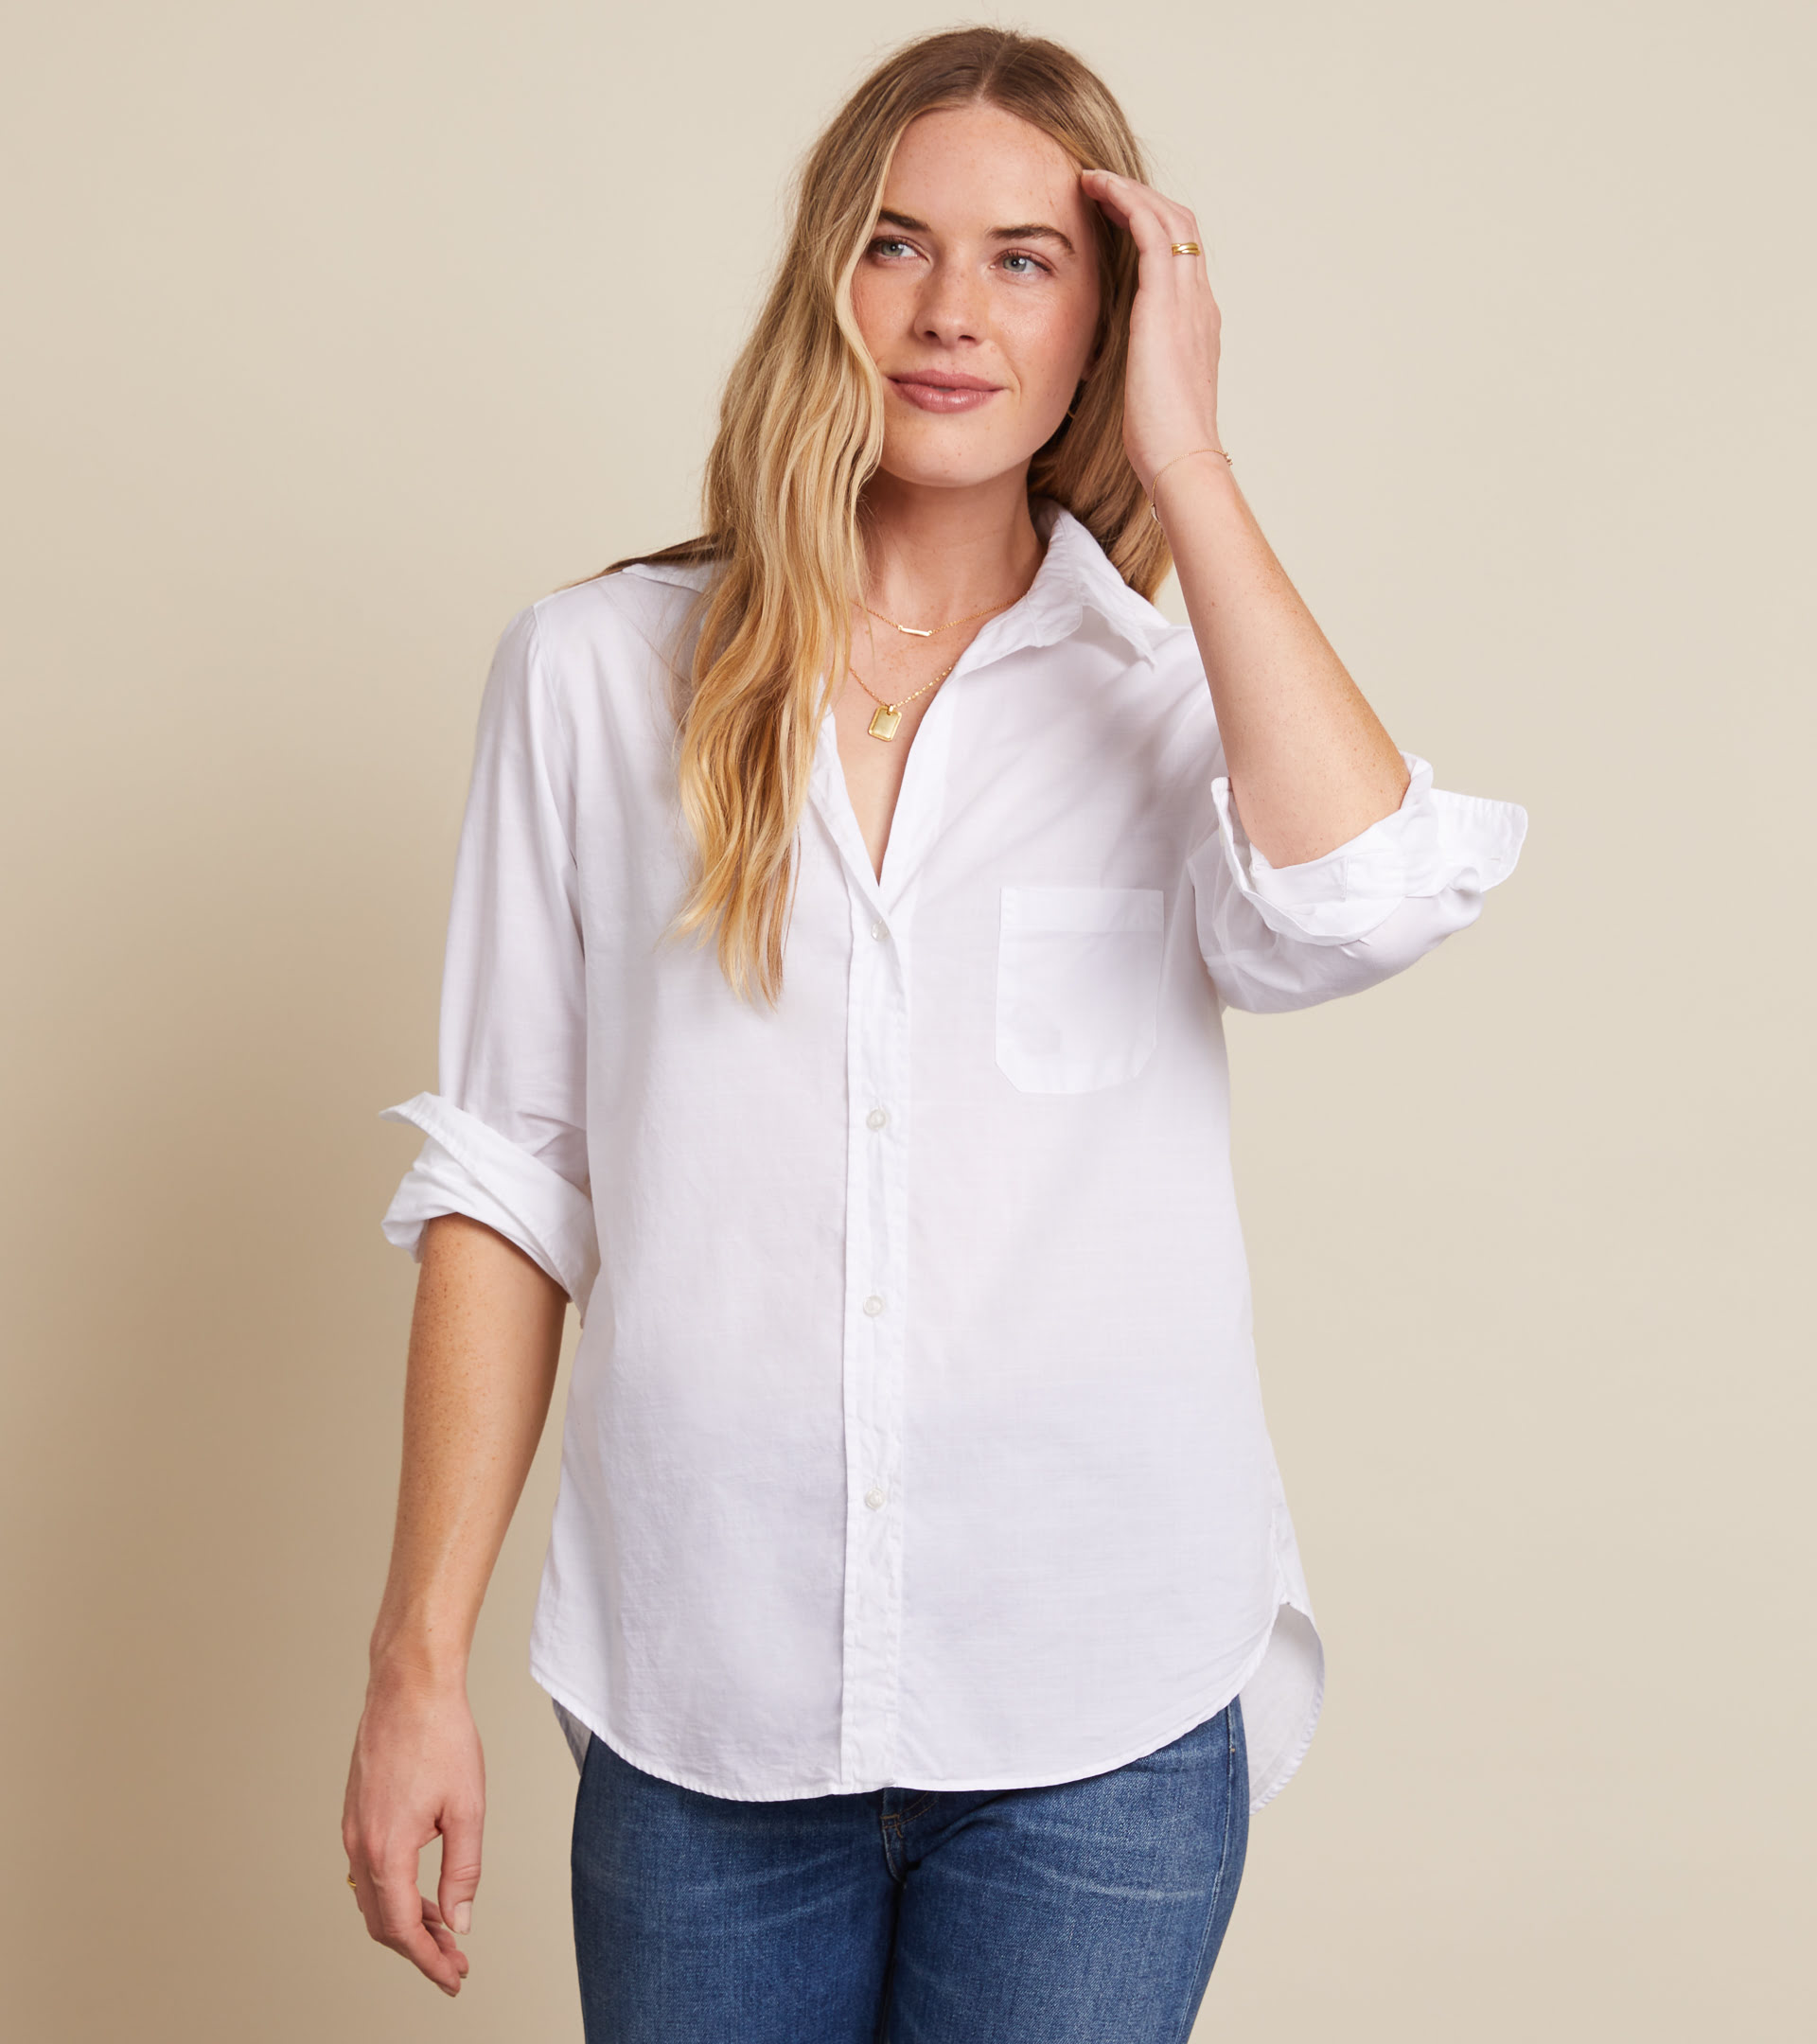 The Hero Classic White, Washed Cotton view 2